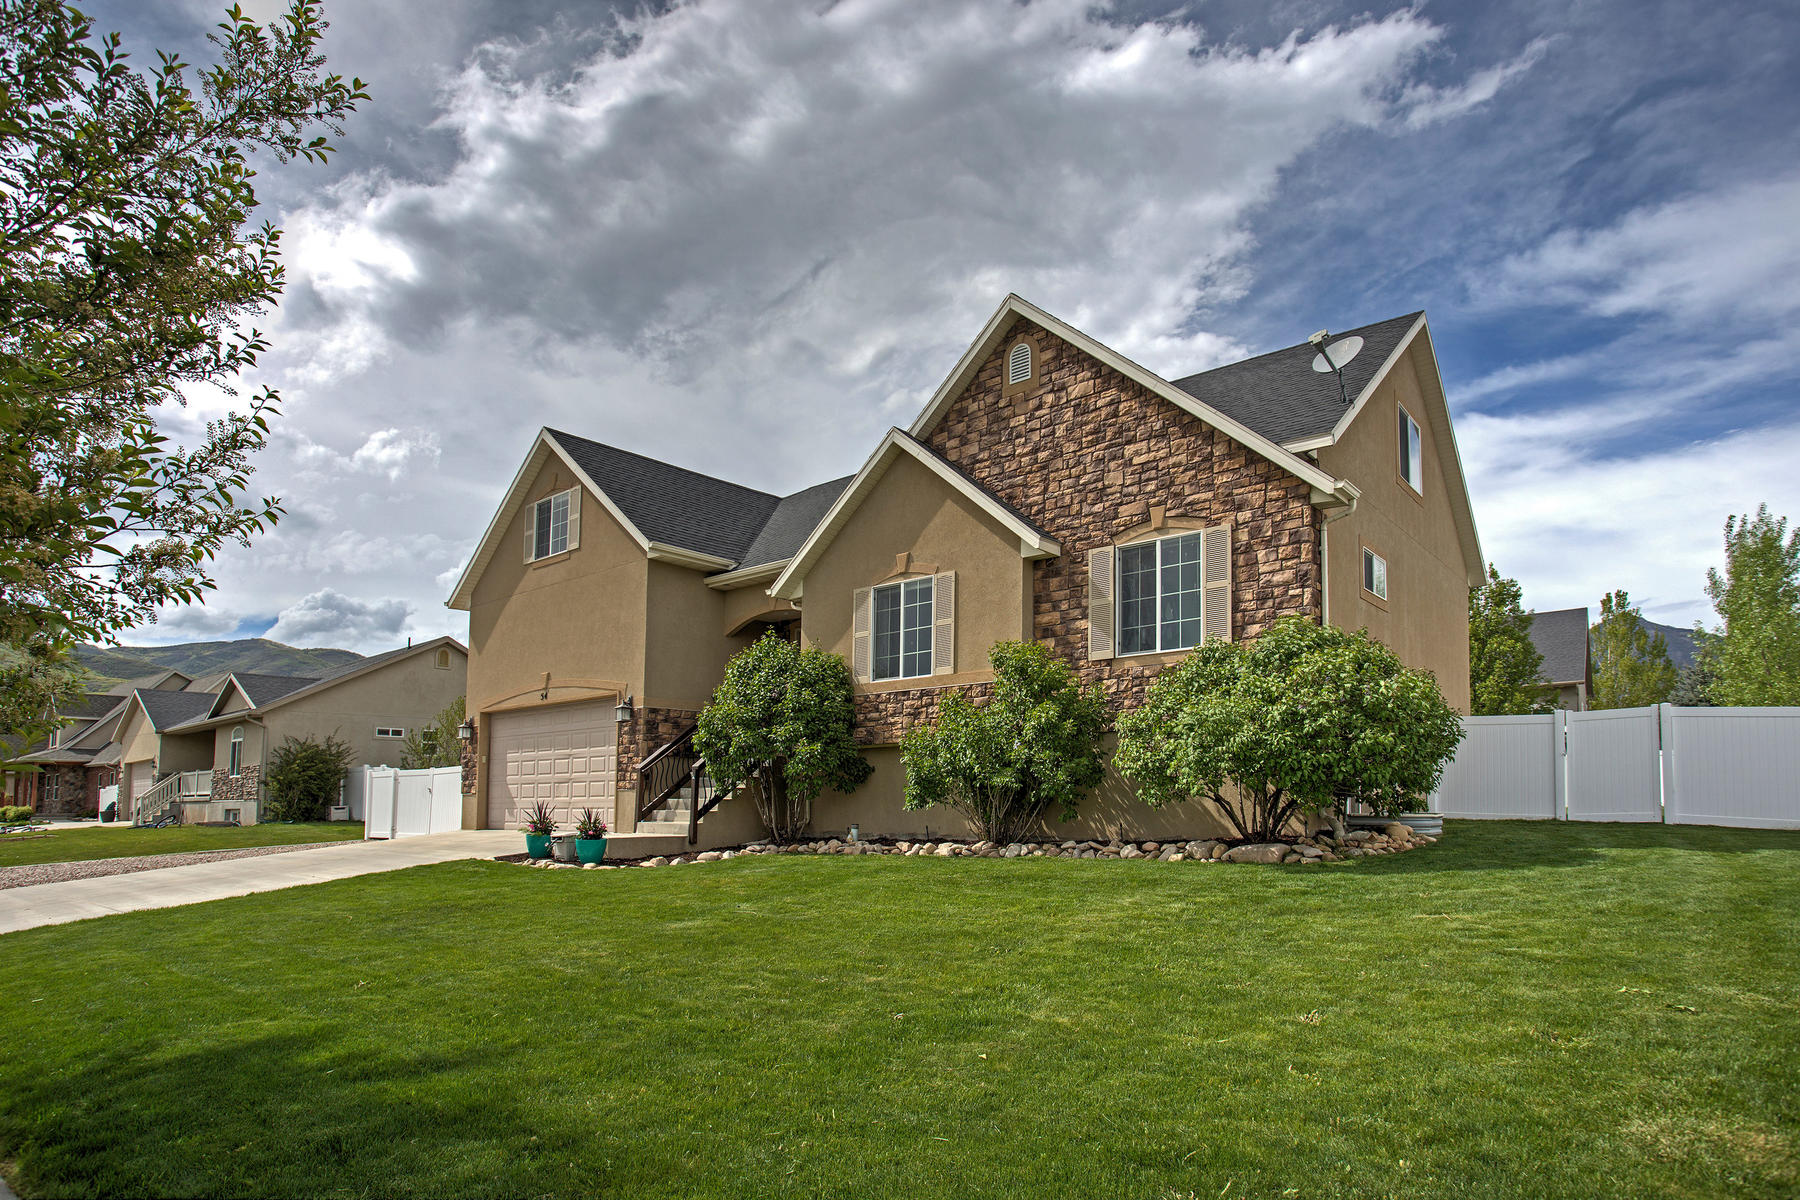 Villa per Vendita alle ore Charming Midway Home With Stunning Views 54 West 350 South Midway, Utah, 84049 Stati Uniti